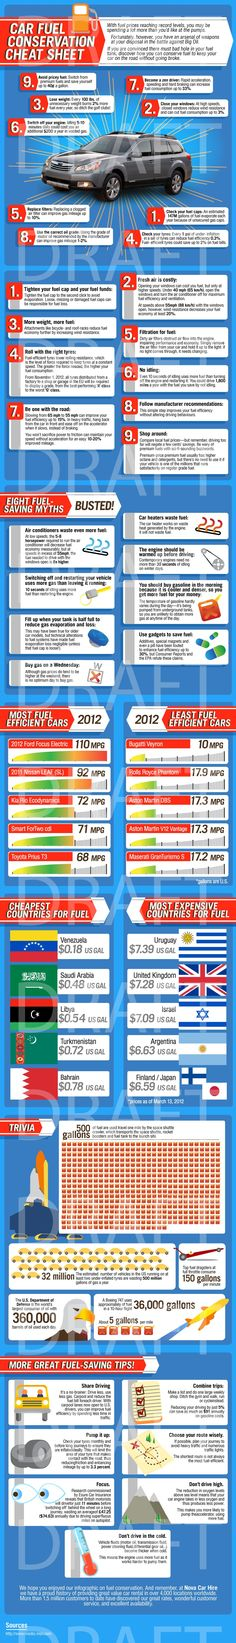 #HarborAutoUsedParts #Lynn #Auto #parts #Cars #vehiclesGreat infographic on car fuel conservation.